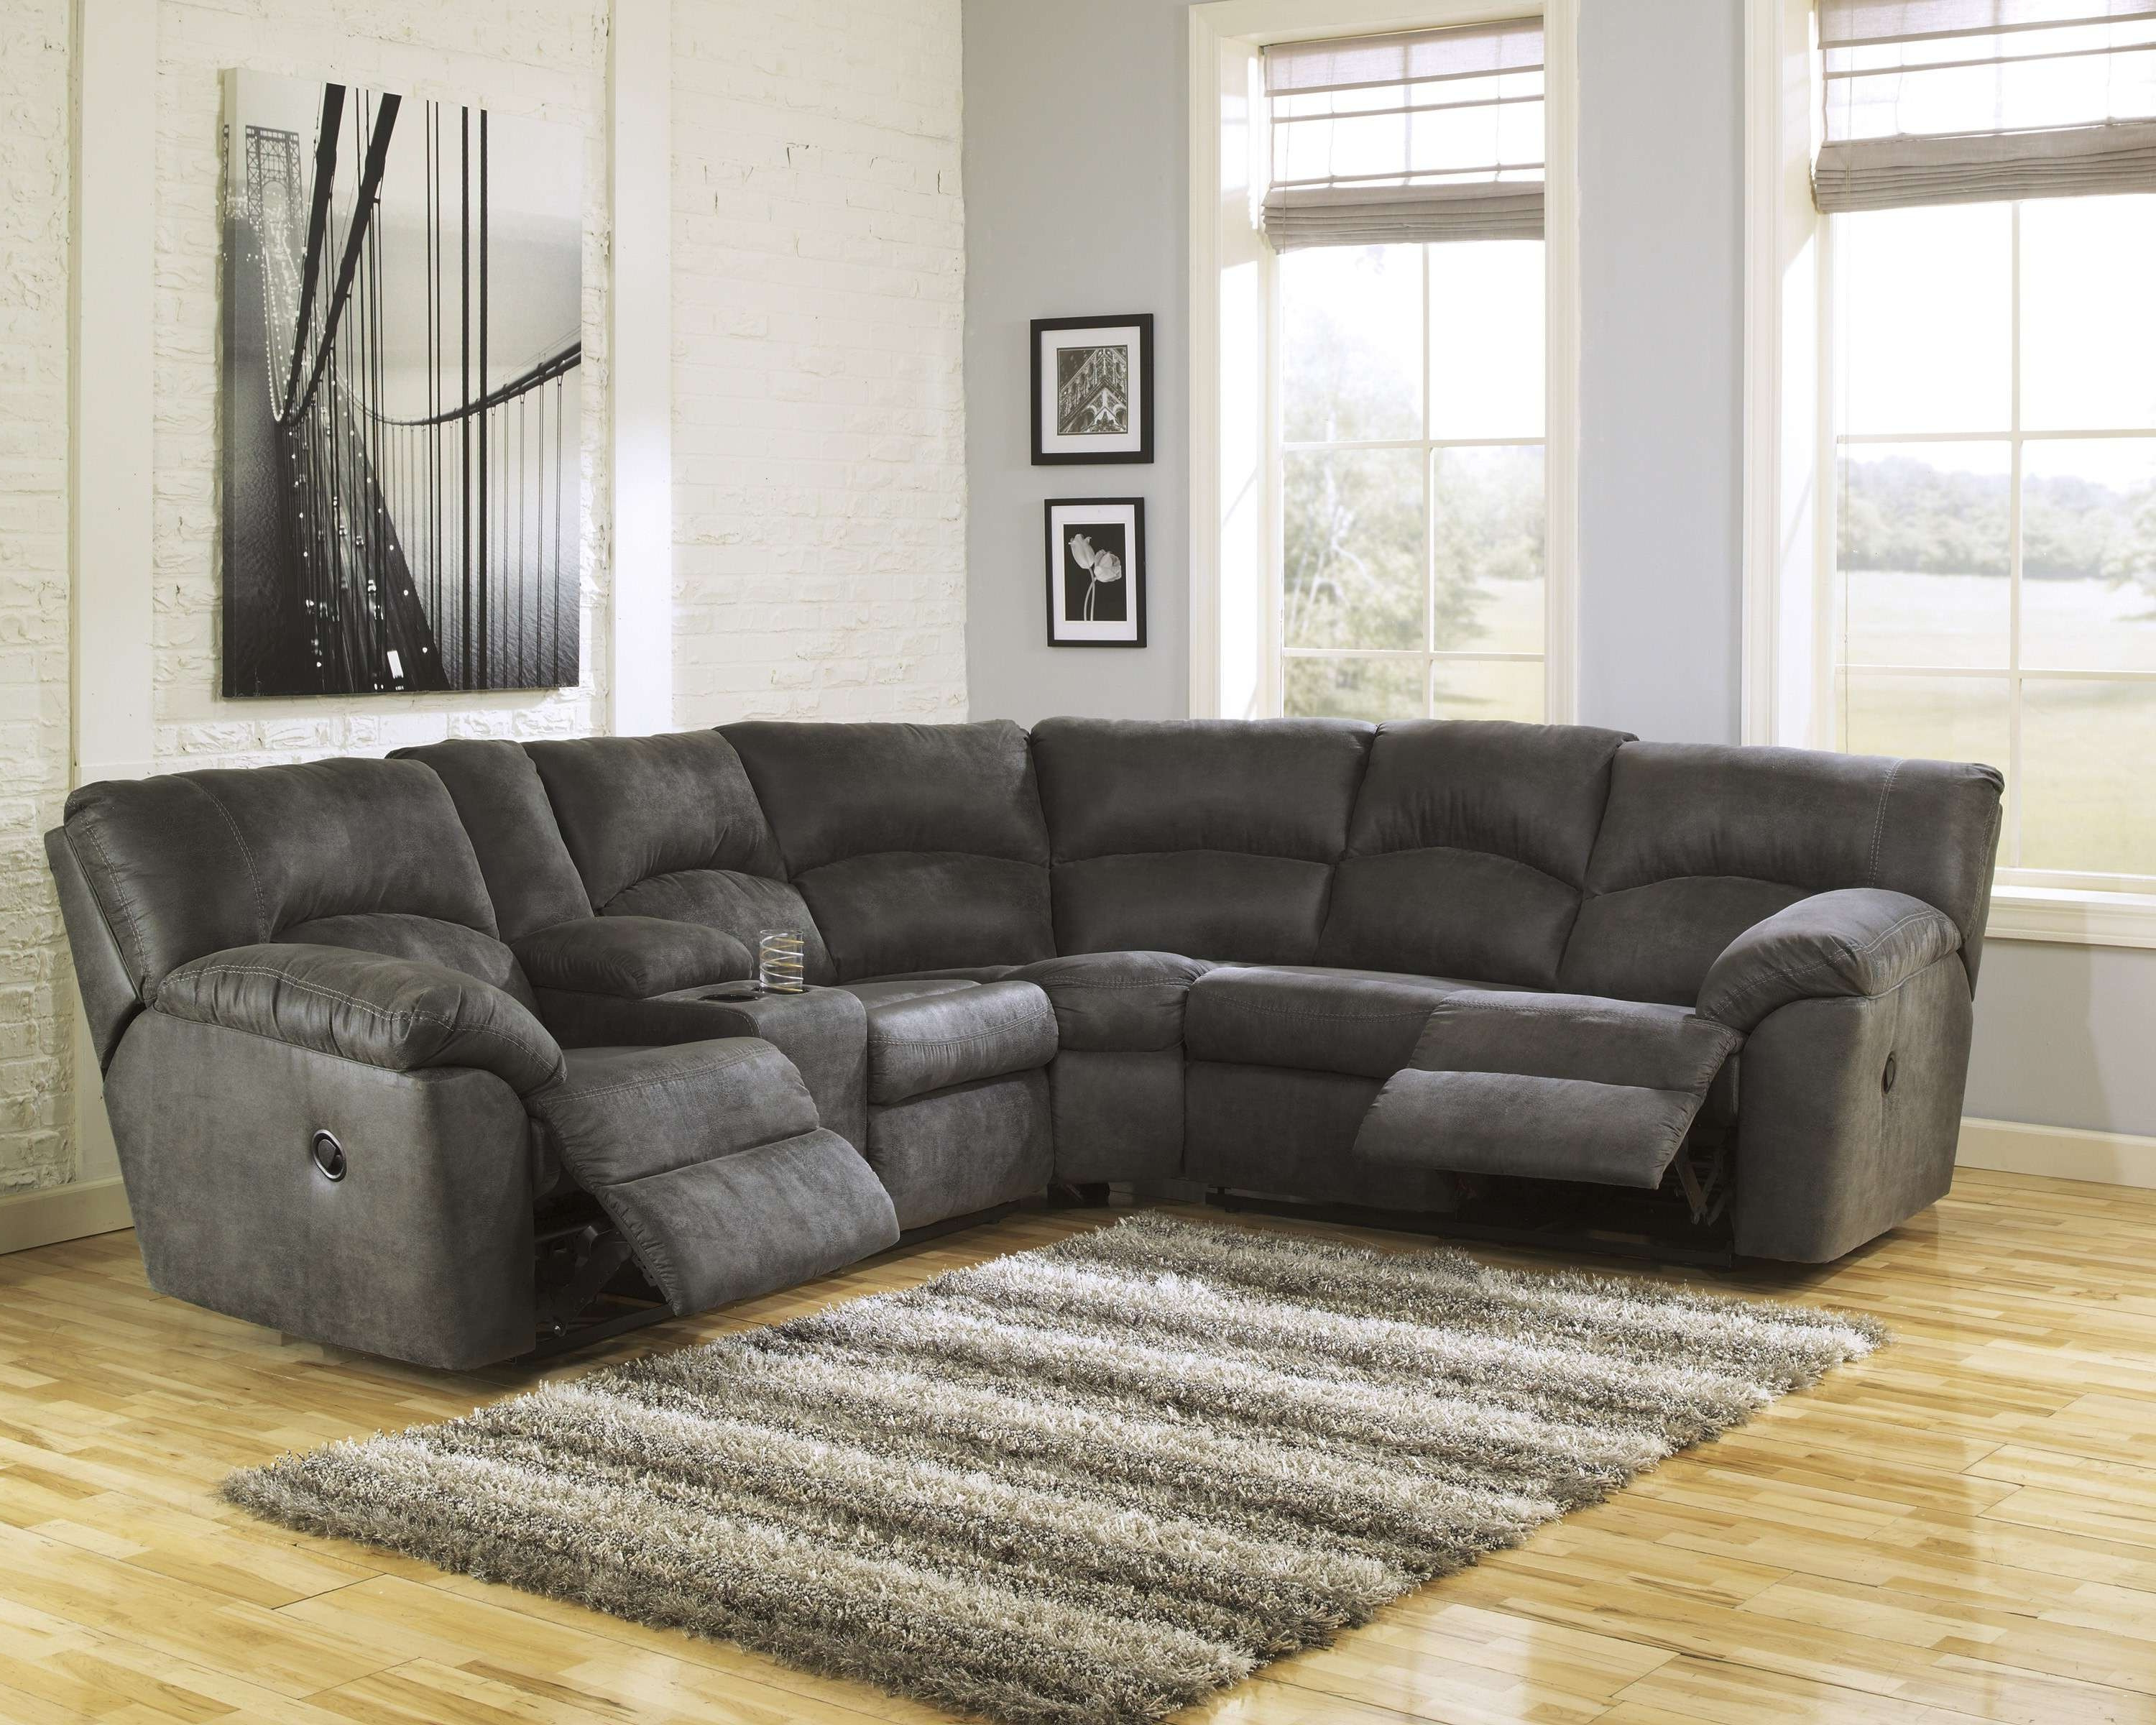 Popular Dark Grey Sectional – Tidex Inside Lucy Grey 2 Piece Sectionals With Raf Chaise (View 11 of 20)